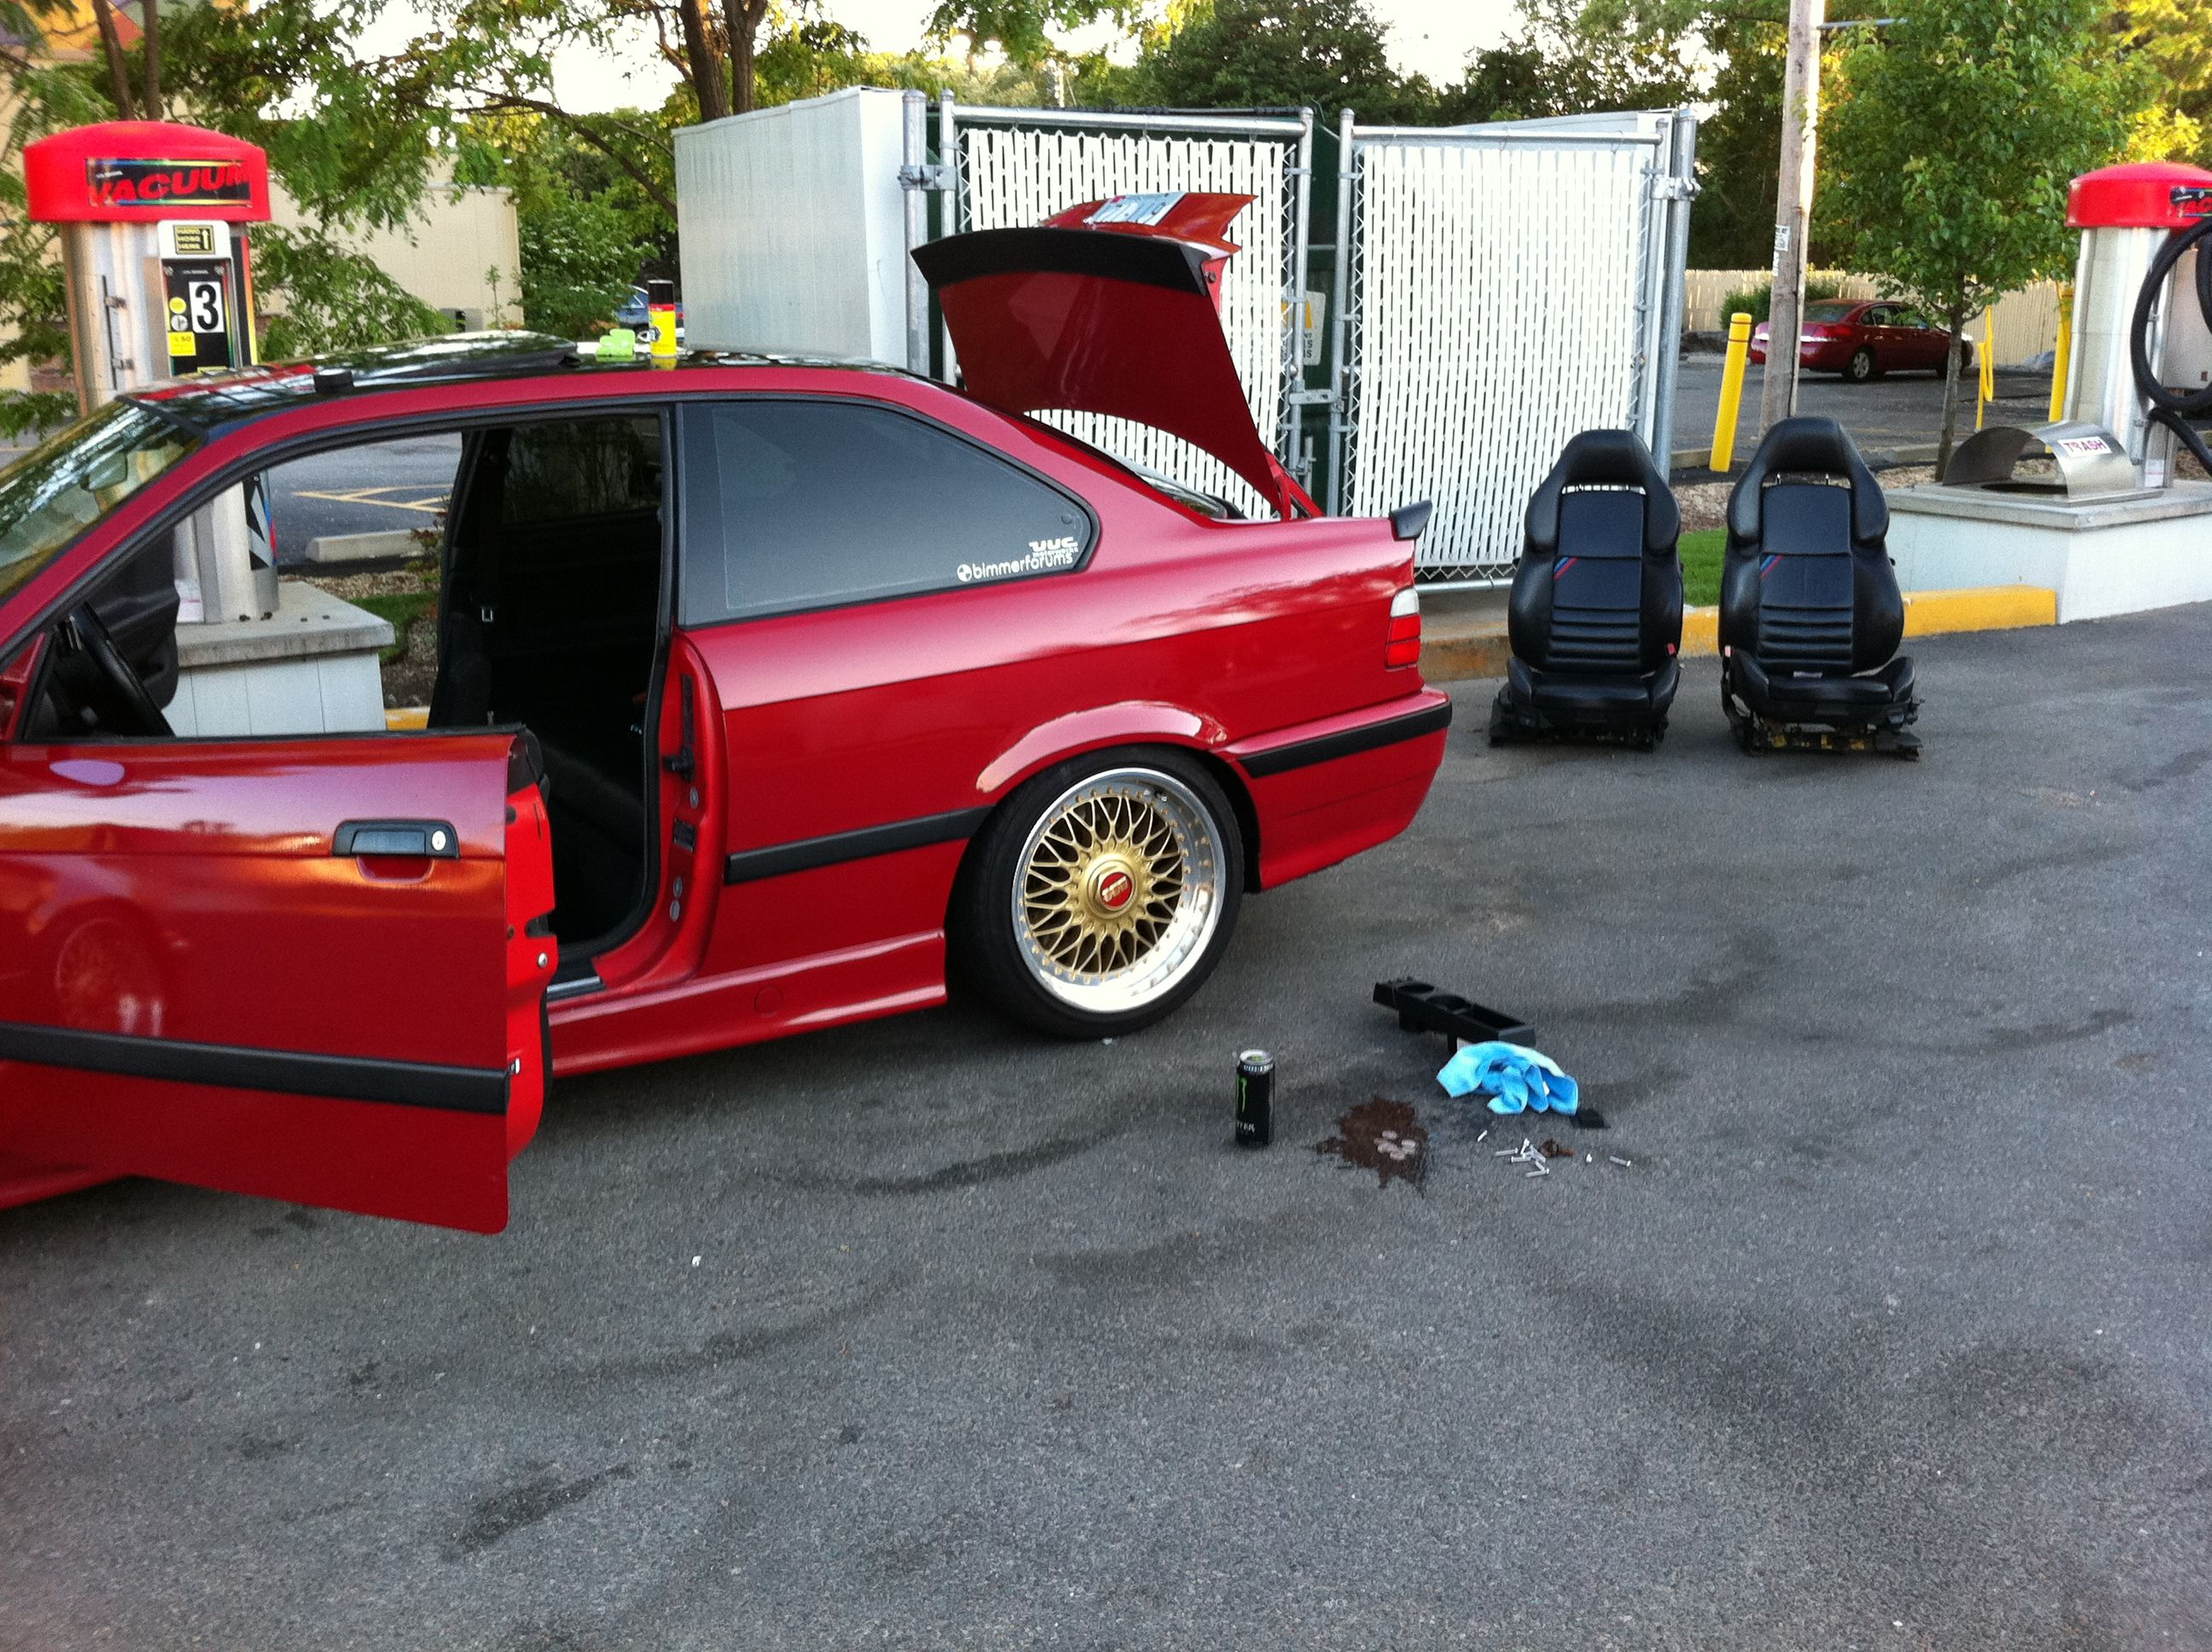 E36 Wtt Gold Polished Bbs Rc090 W New Rubber